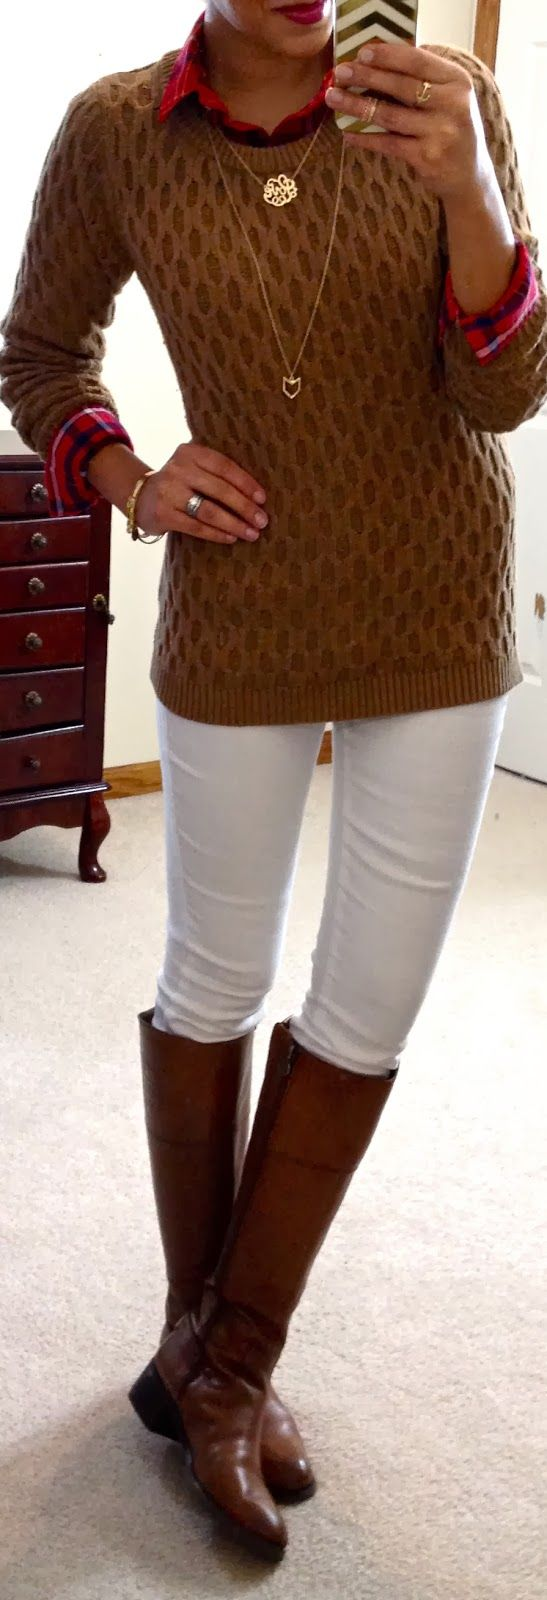 caramel, white, & plaid, I really like the caramel color with plaid and the longer necklace, I have this sweater and similar boots